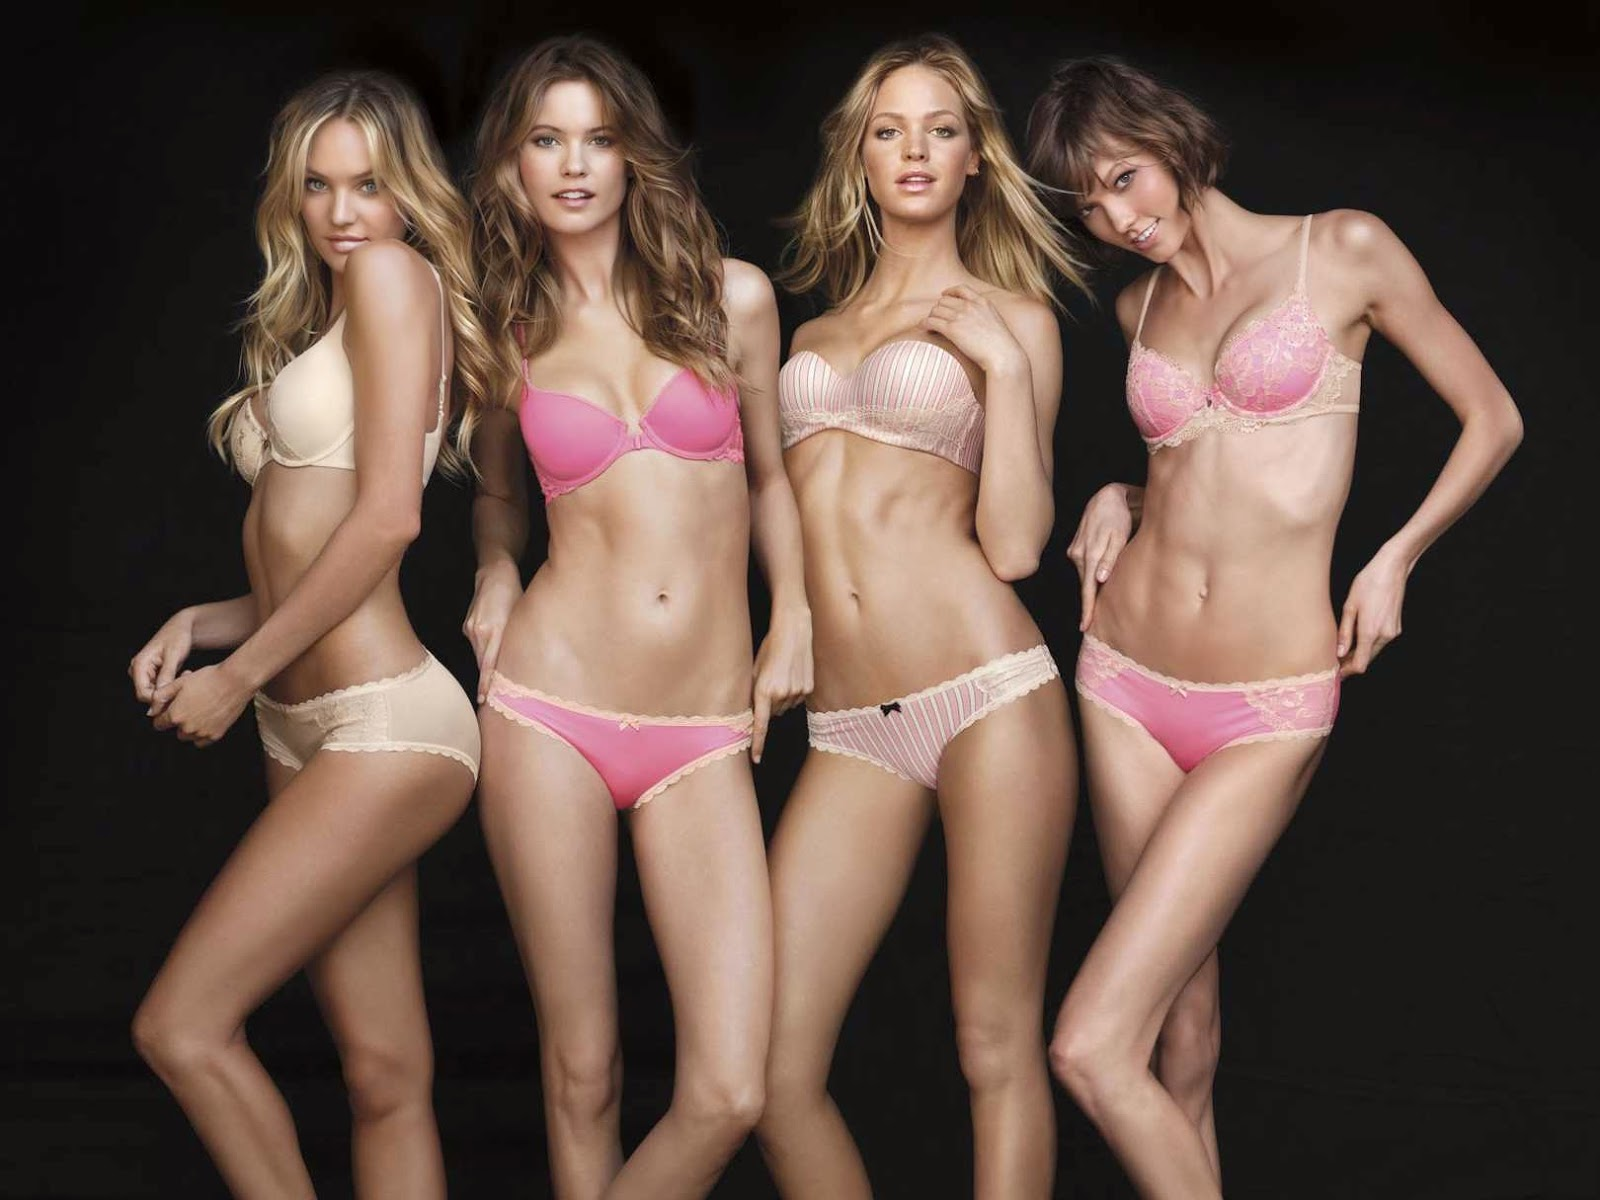 "The Angels started out as one of Victoria's Secret's lingerie lines. The models featured in the original advertising televised campaign in 1997 were Helena Christensen, Karen Mulder, Daniela Peštová, Stephanie Seymour, and Tyra Banks, with Yasmeen Ghauri being featured in print. In February 1998, the Angels made their runway debut at Victoria's Secret's 4th annual fashion show, with Chandra North filling in for Christensen. Due to their growing popularity, the brand used those models in several other advertising campaigns alongside Laetitia Casta and Inés Rivero, Christensen was the first to leave the brand. Nowadays, the term Angels refers to the brand's contracted spokeswomen, while the fashion show models are referred to as ""Runway Angels"". In 2004 due the Superbowl controversy, instead of a televised show, Victoria's Secret sent its 5 contract models on a tour called Angels Across America. The Angel line-up has been changed multiple times over the years, with one being officially released before each fashion show. The brand currently lists 8 supermodels on its website, and had a Facebook application in 2013-2014 highlighting the Angels (then including Miranda Kerr and Erin Heatherton) as well as Lais Ribeiro, Toni Garrn and Barbara Palvin. Among other recognitions, the Victoria's Secret Angels were chosen to be part of People magazine's annual ""100 Most Beautiful People in the World"" issue in 2007 and became the first trademark awarded a star on the Hollywood Walk of Fame on November 13, 2007.[citation needed] Other notable spokesmodels for the brand have included: Claudia Schiffer, Eva Herzigová, Oluchi Onweagba, Jessica Stam, Ana Beatriz Barros, and Emanuela de Paula, as well as a handful of celebrities such as Taylor Momsen."